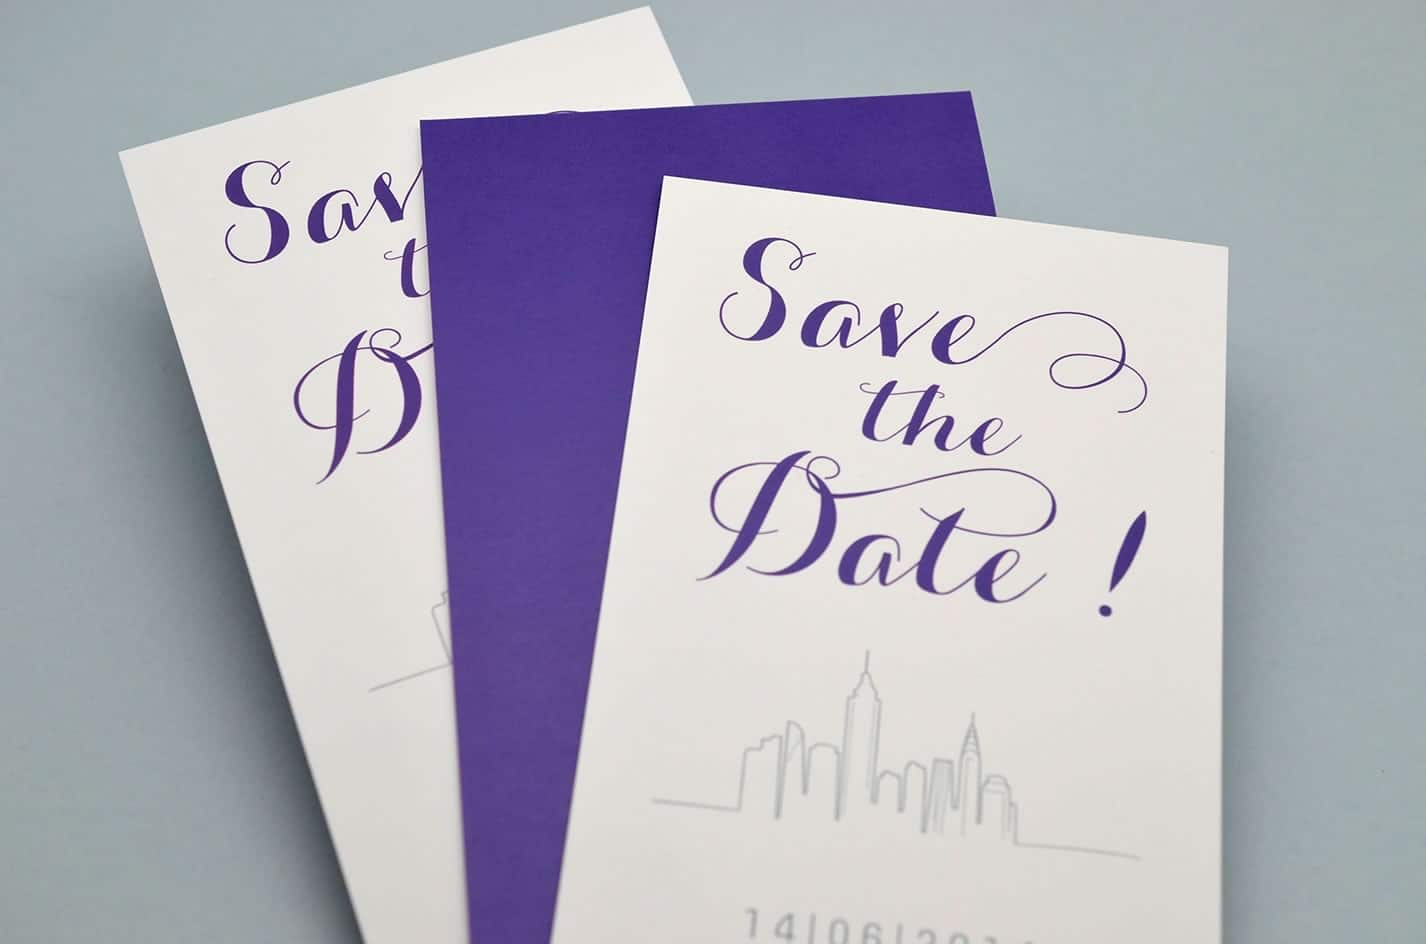 Save the date mariage new york design violet skyline sur mesure voyage latelierdelsa